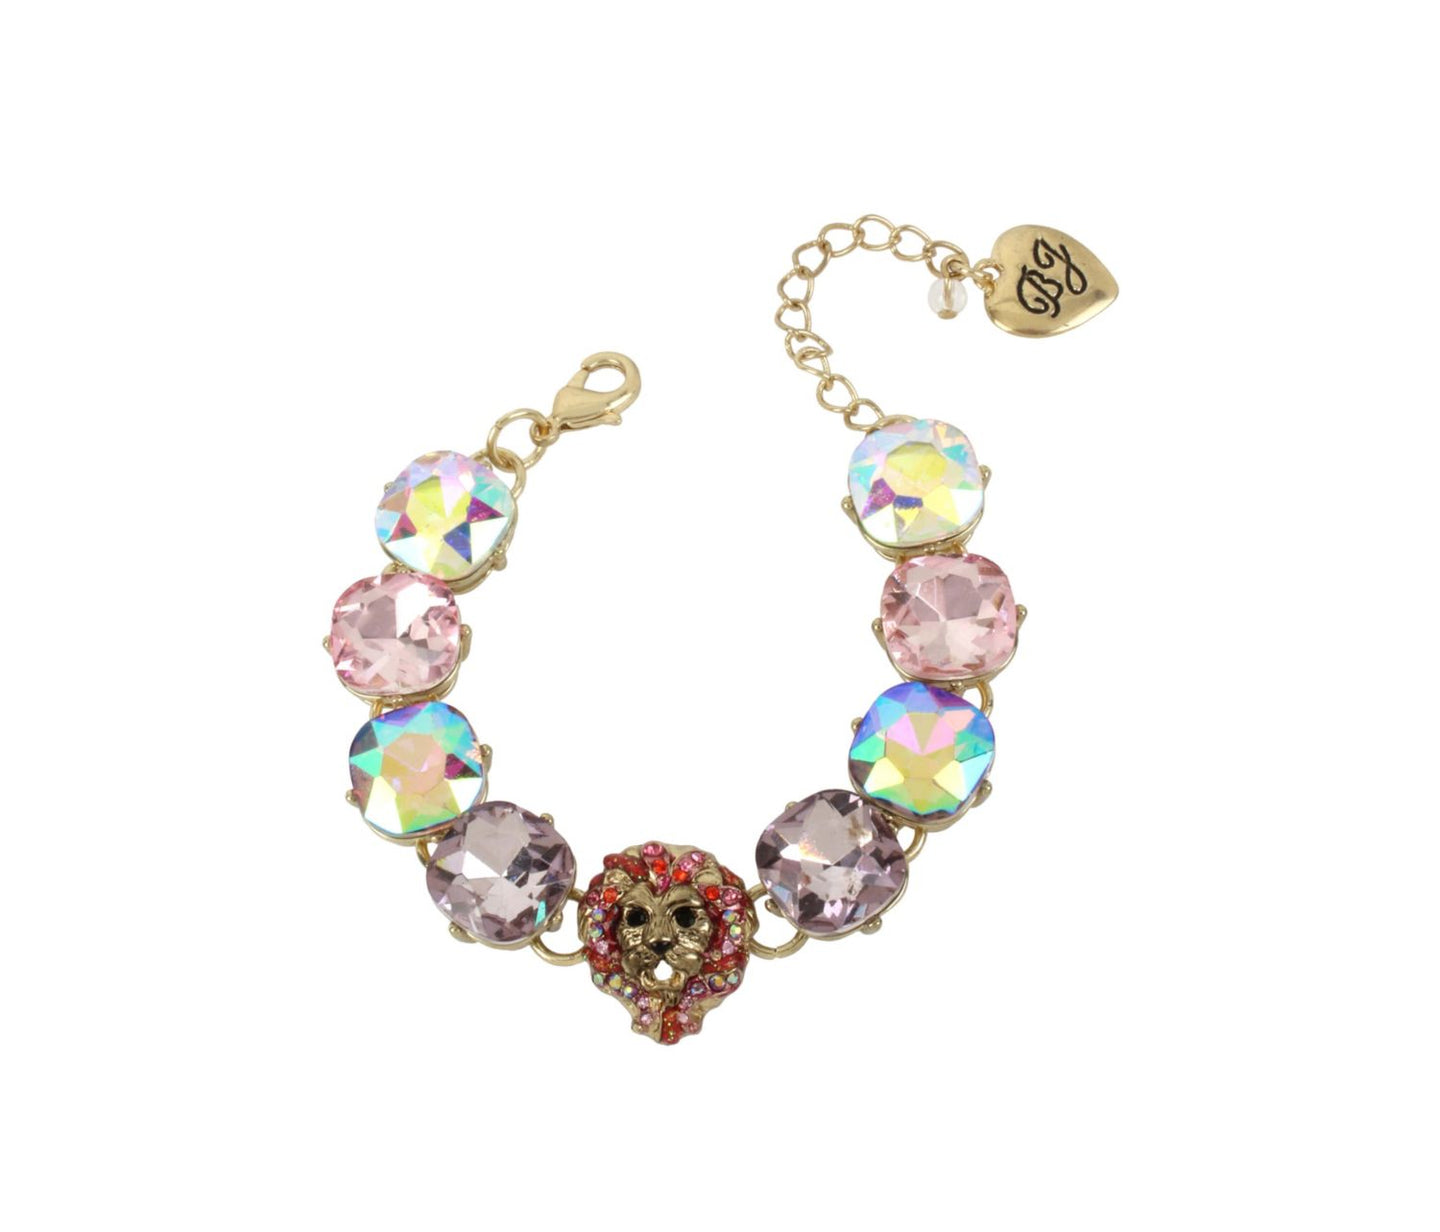 MAGICAL CREATURES LION BRACELET PINK - JEWELRY - Betsey Johnson